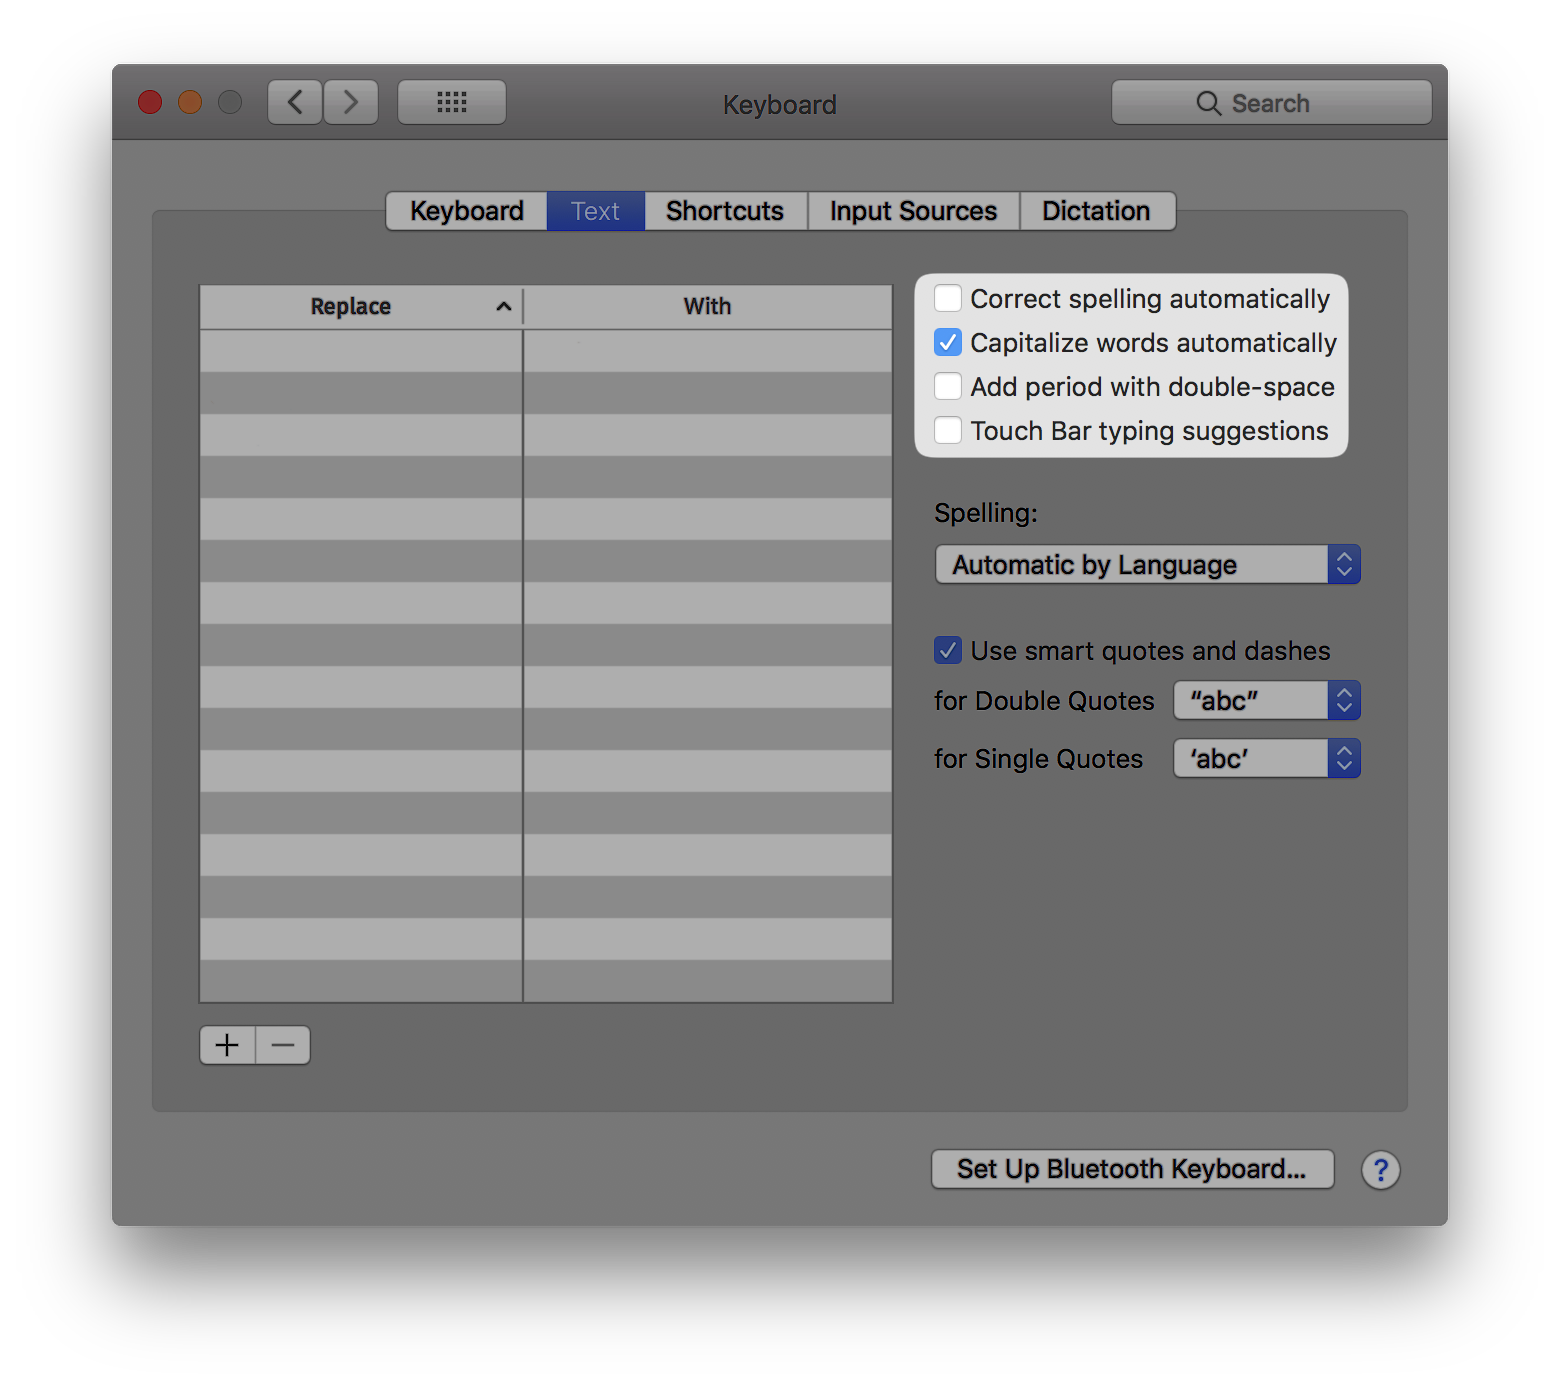 How To Enable Automatic Capitalization On macOS - iOS Hacker